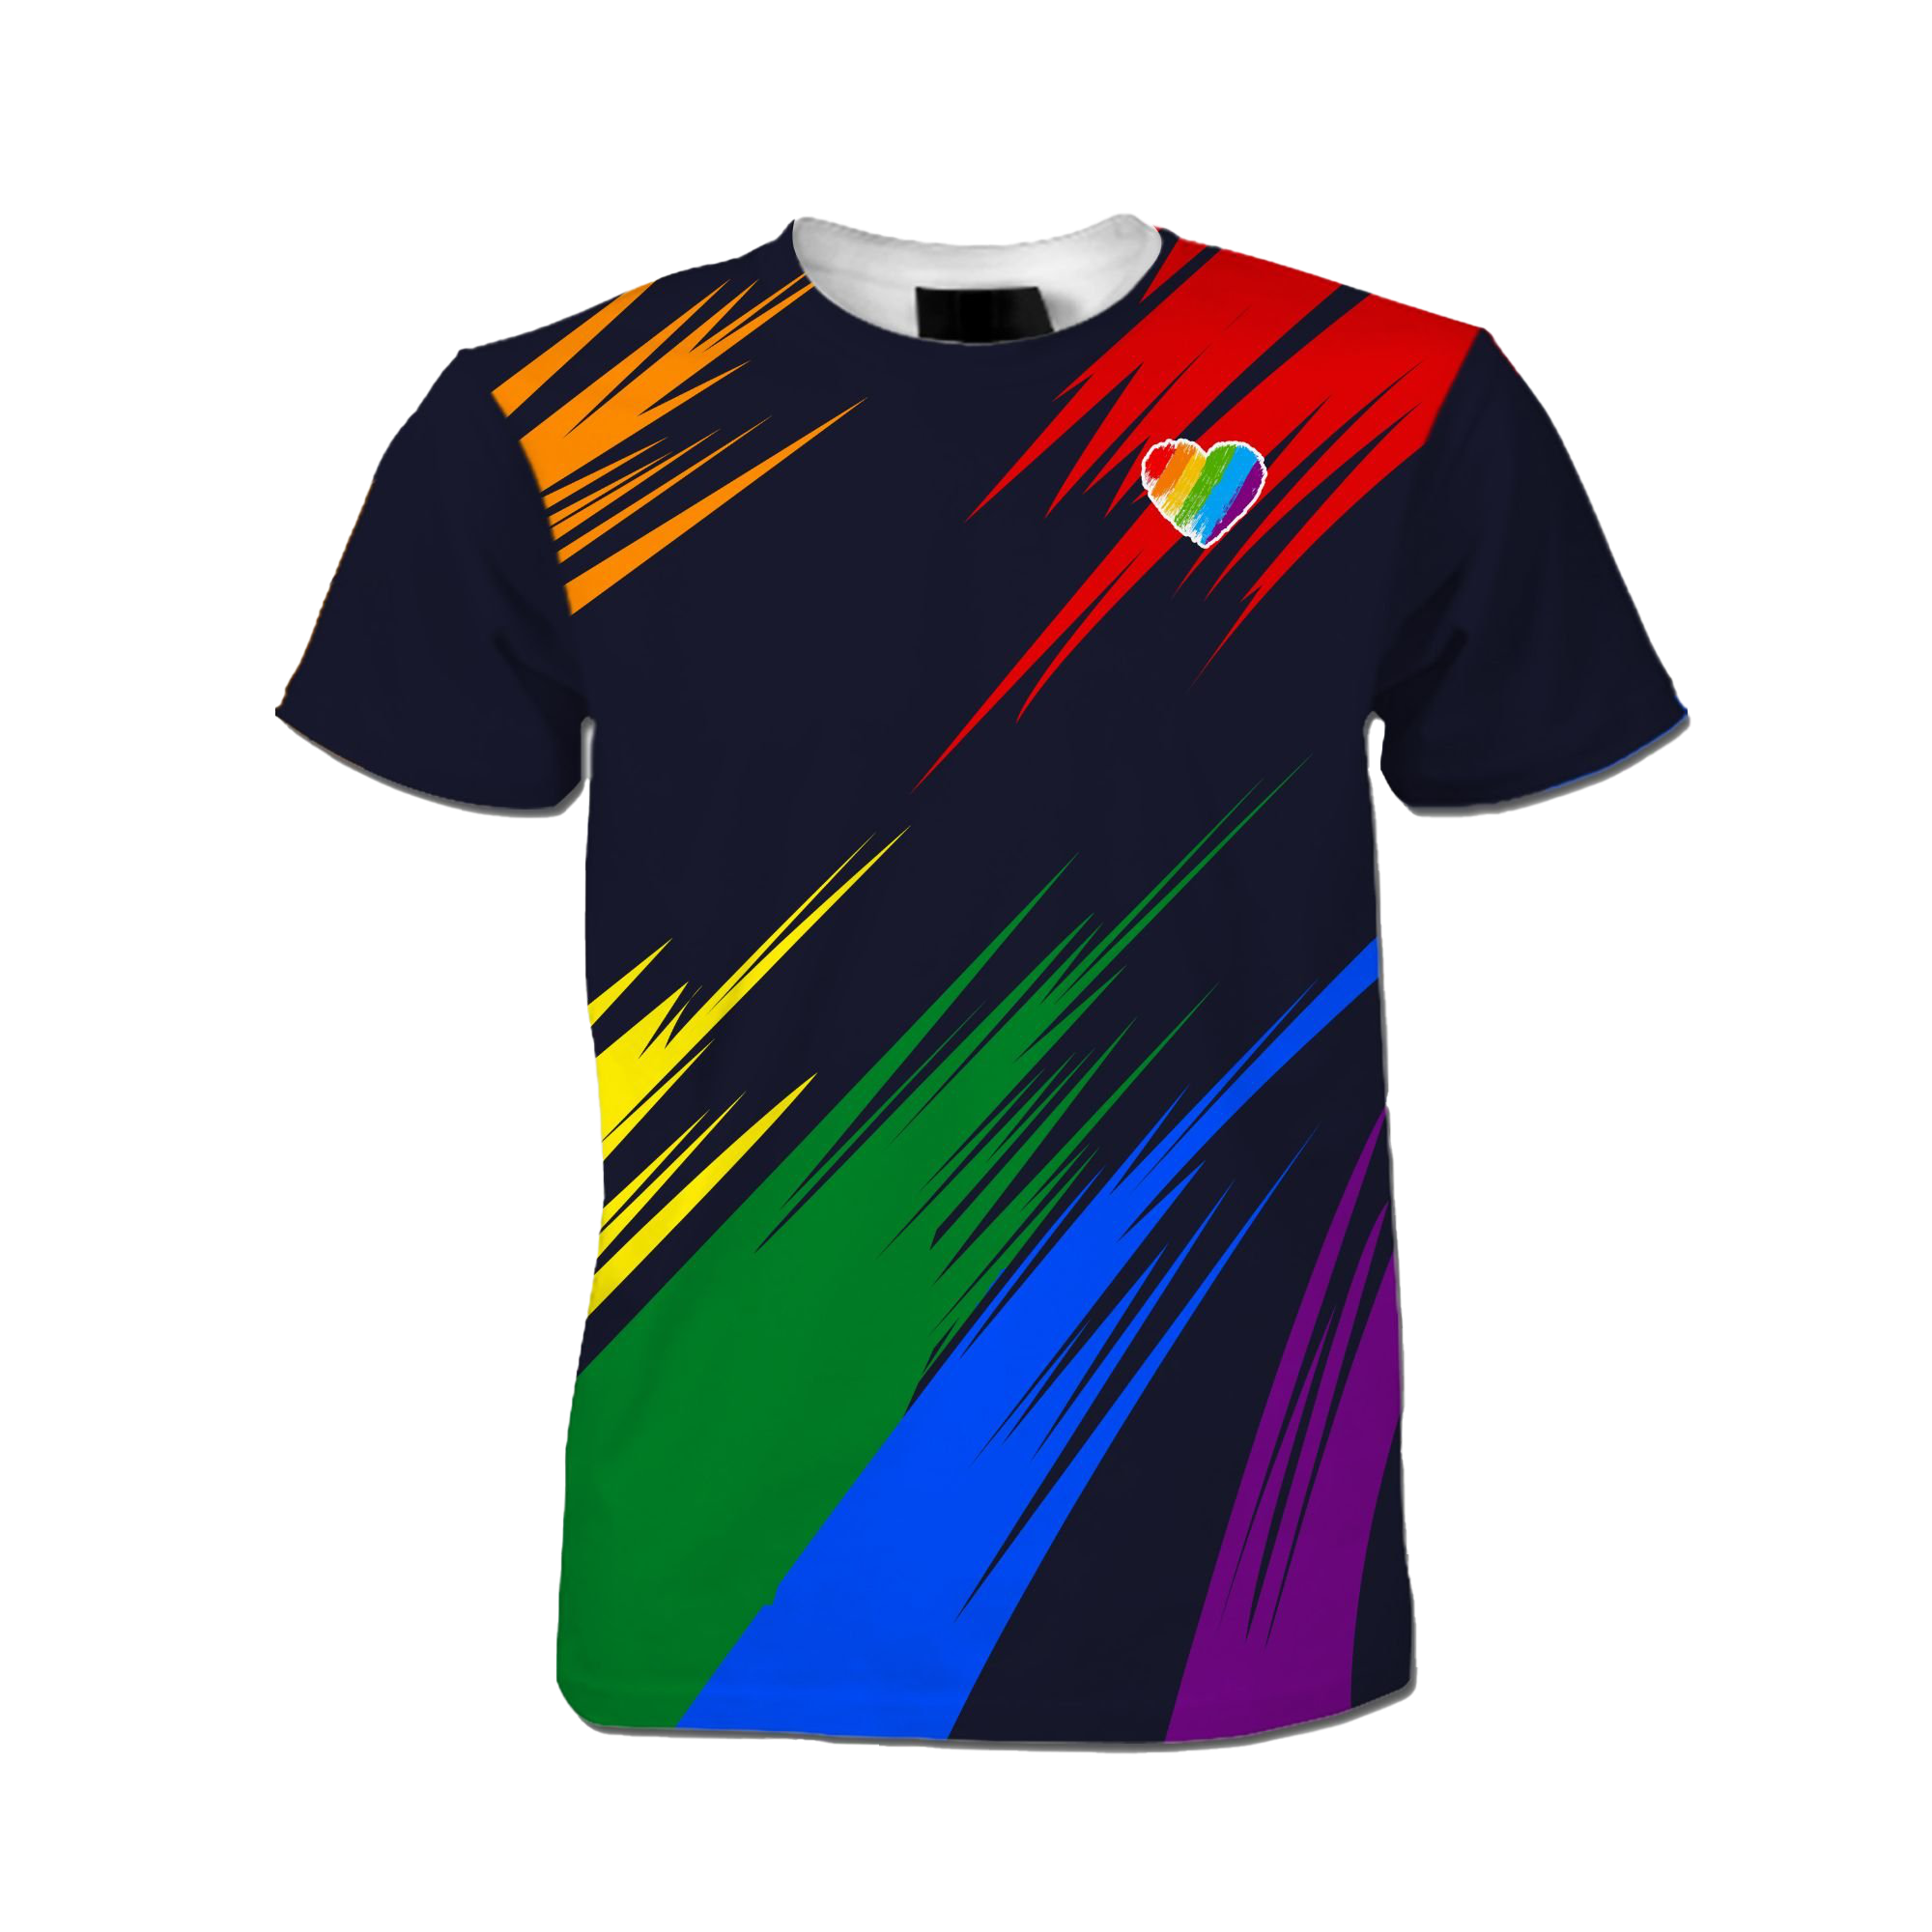 Rainbow Heart LGBT Gay Lesbian Bisexual Transgender 3D All Over Print T Shirt For LGBTQ Community In Pride Month